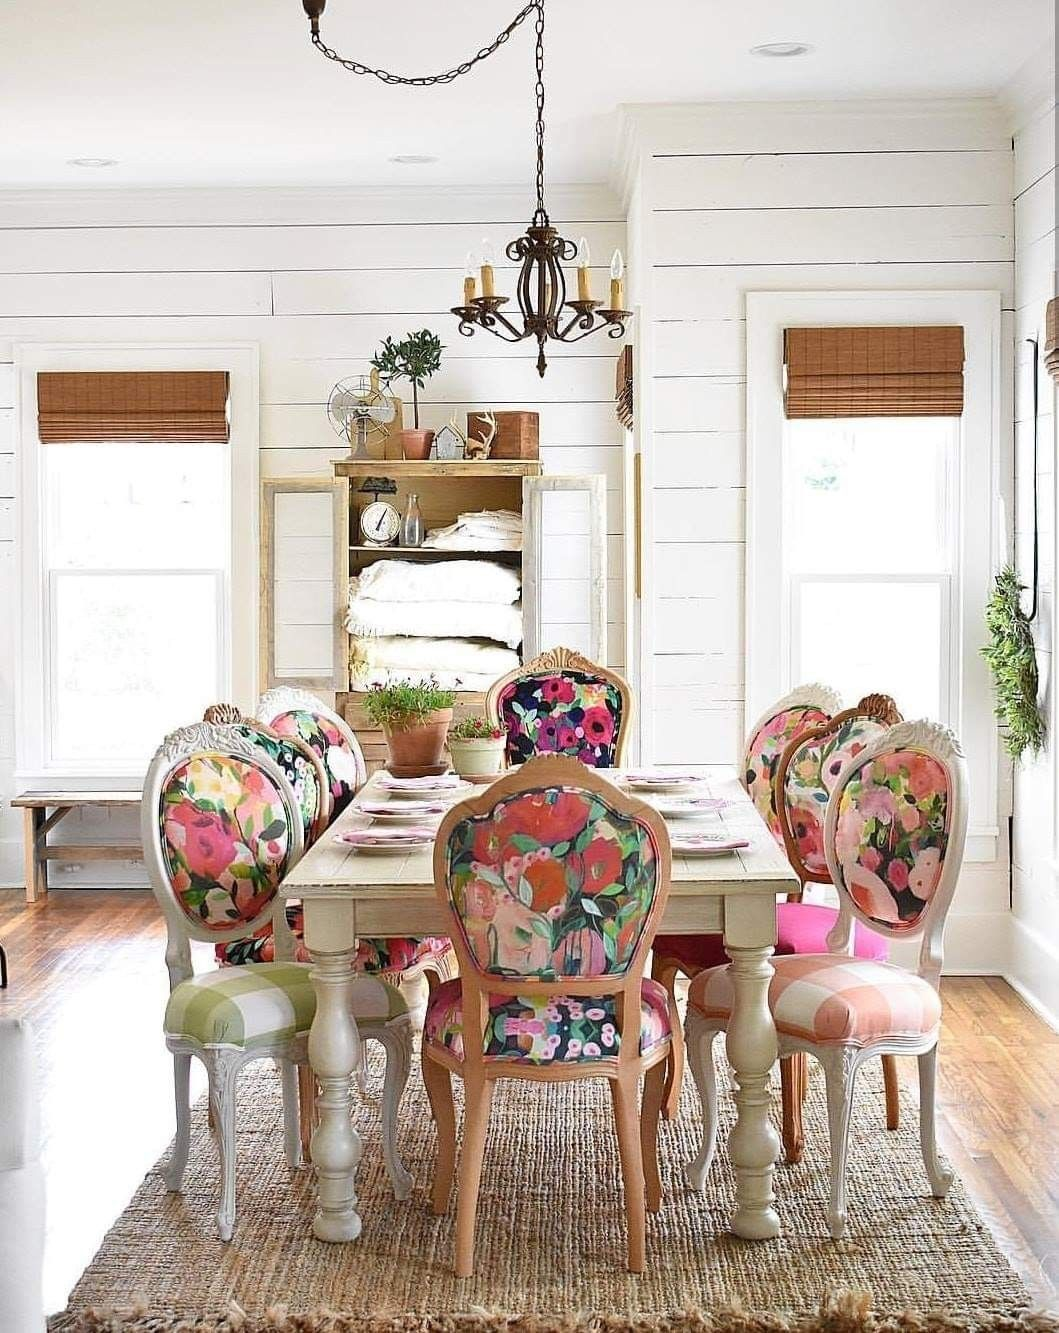 Absolutely Stunning Farmhouse Style Home With Floral Upholstered